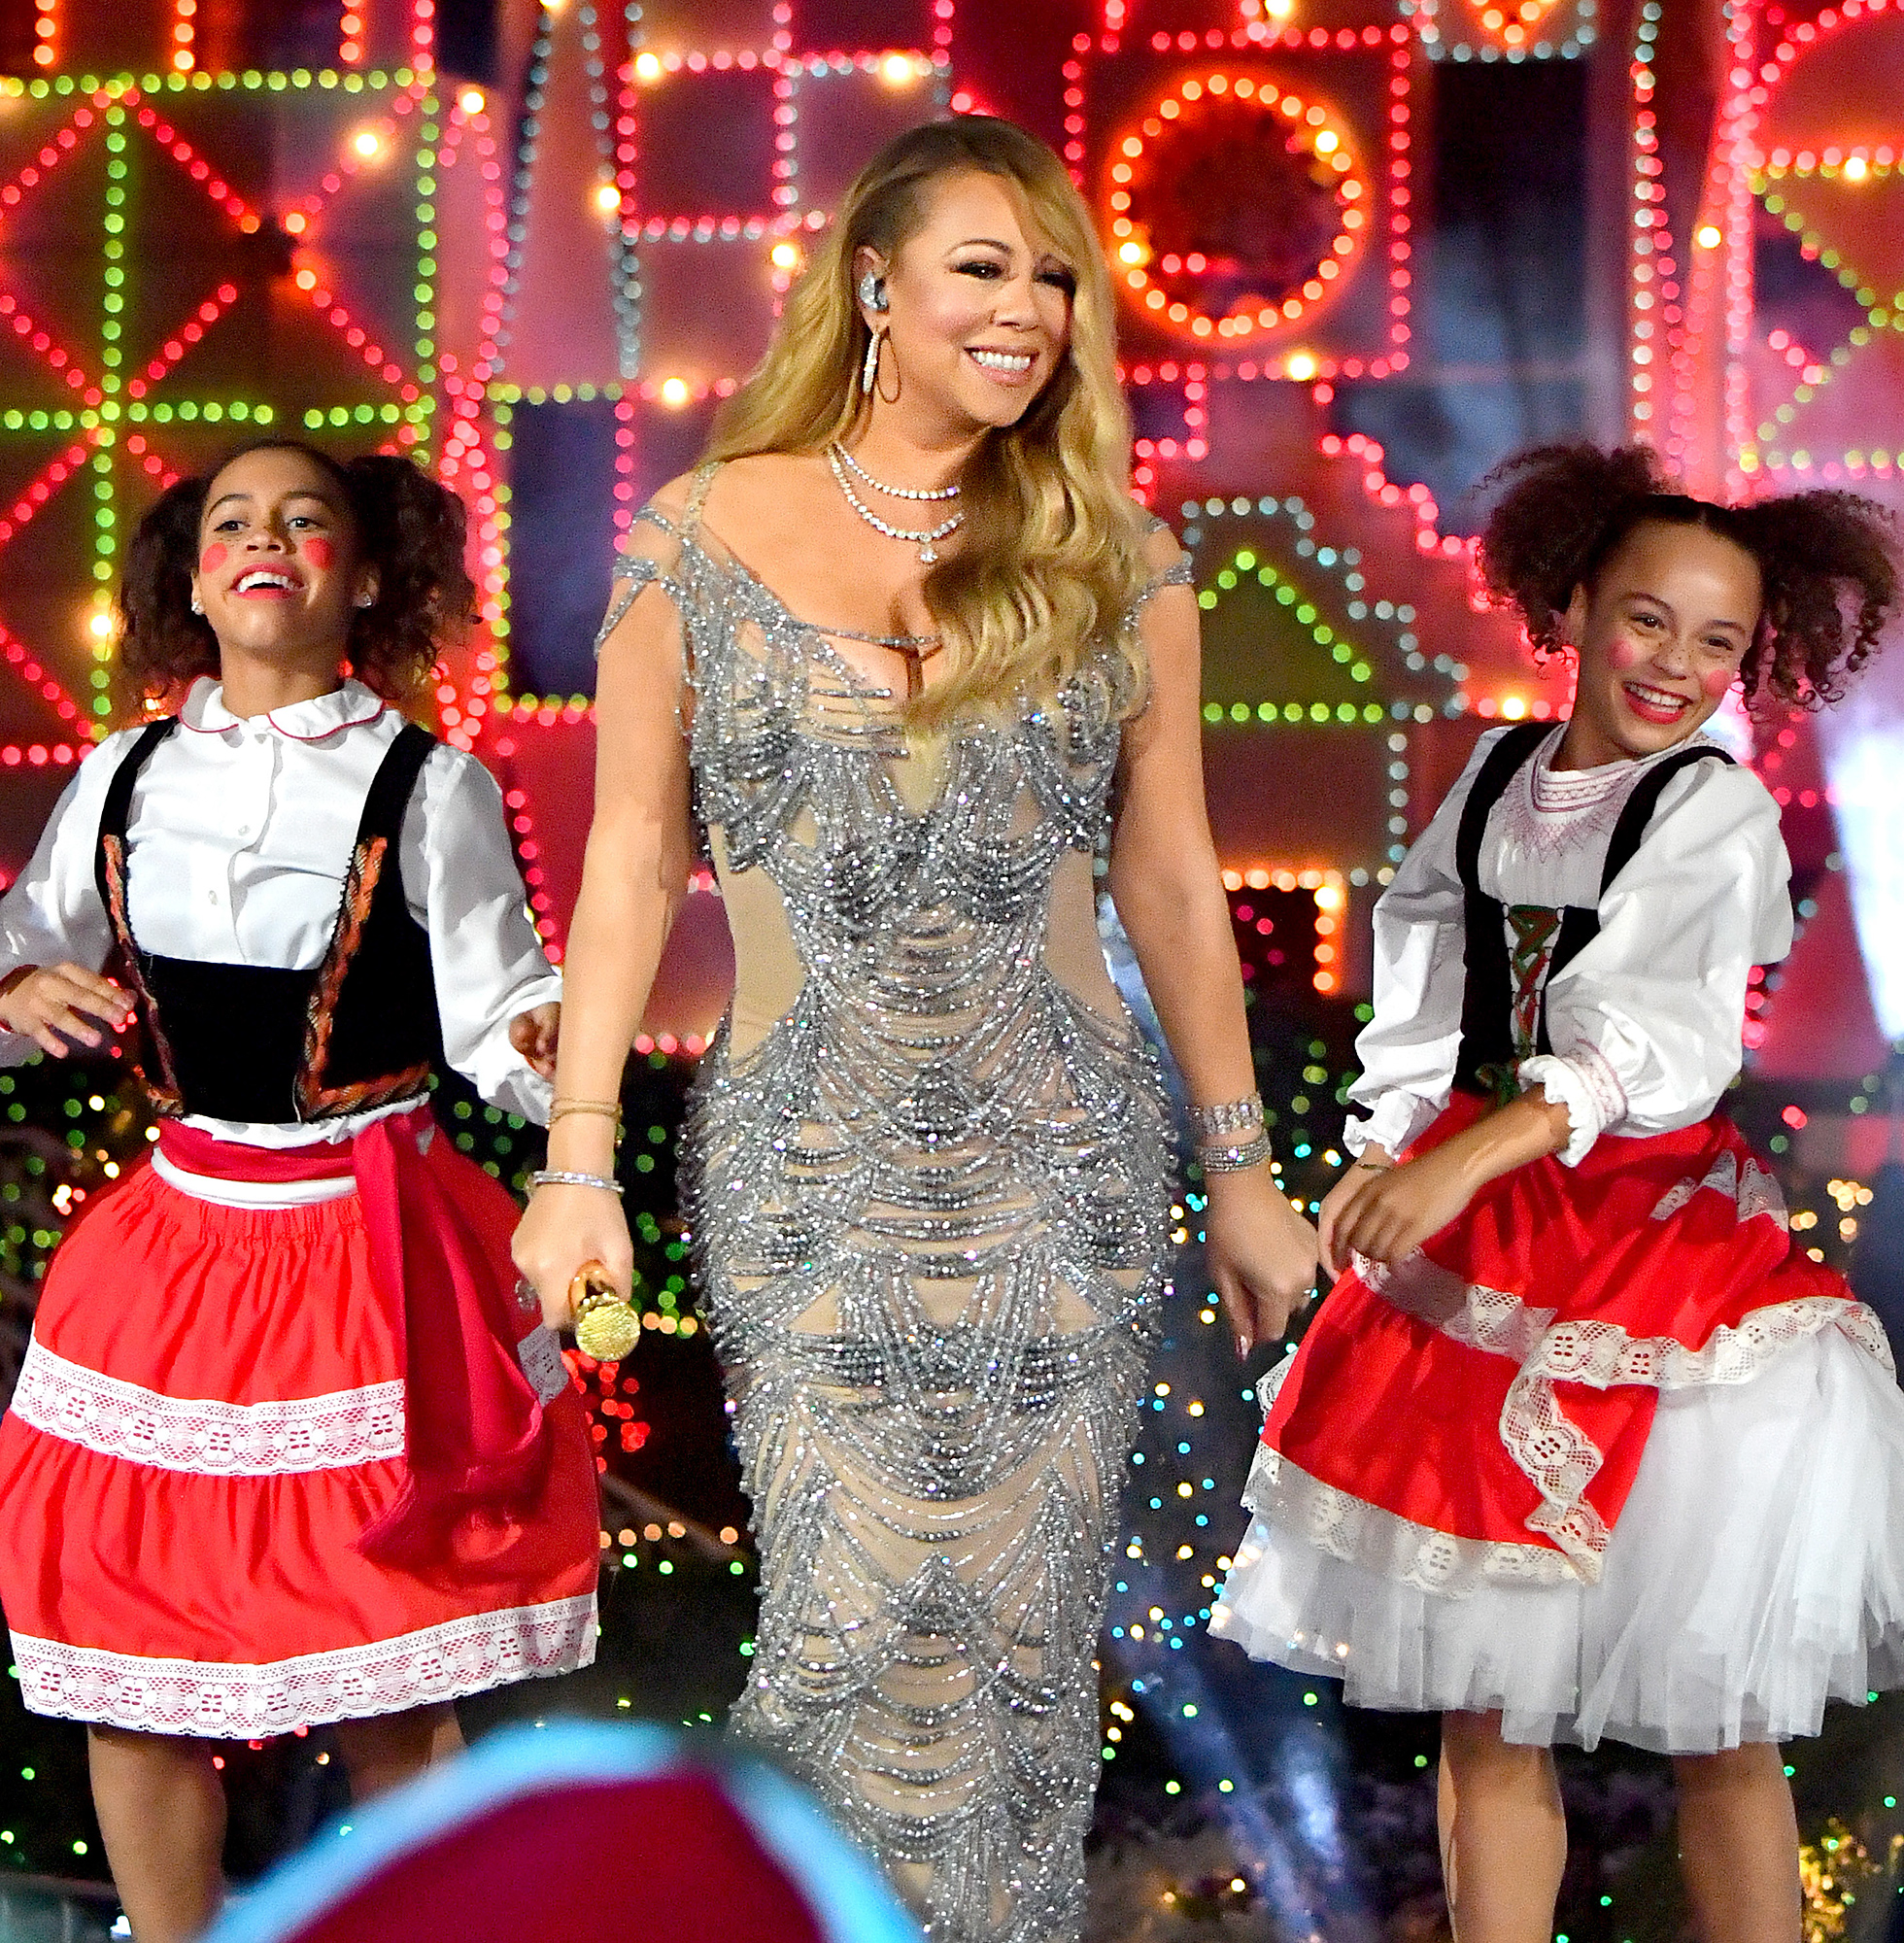 Mariah Carey performs at Disneyland for their Christmas special